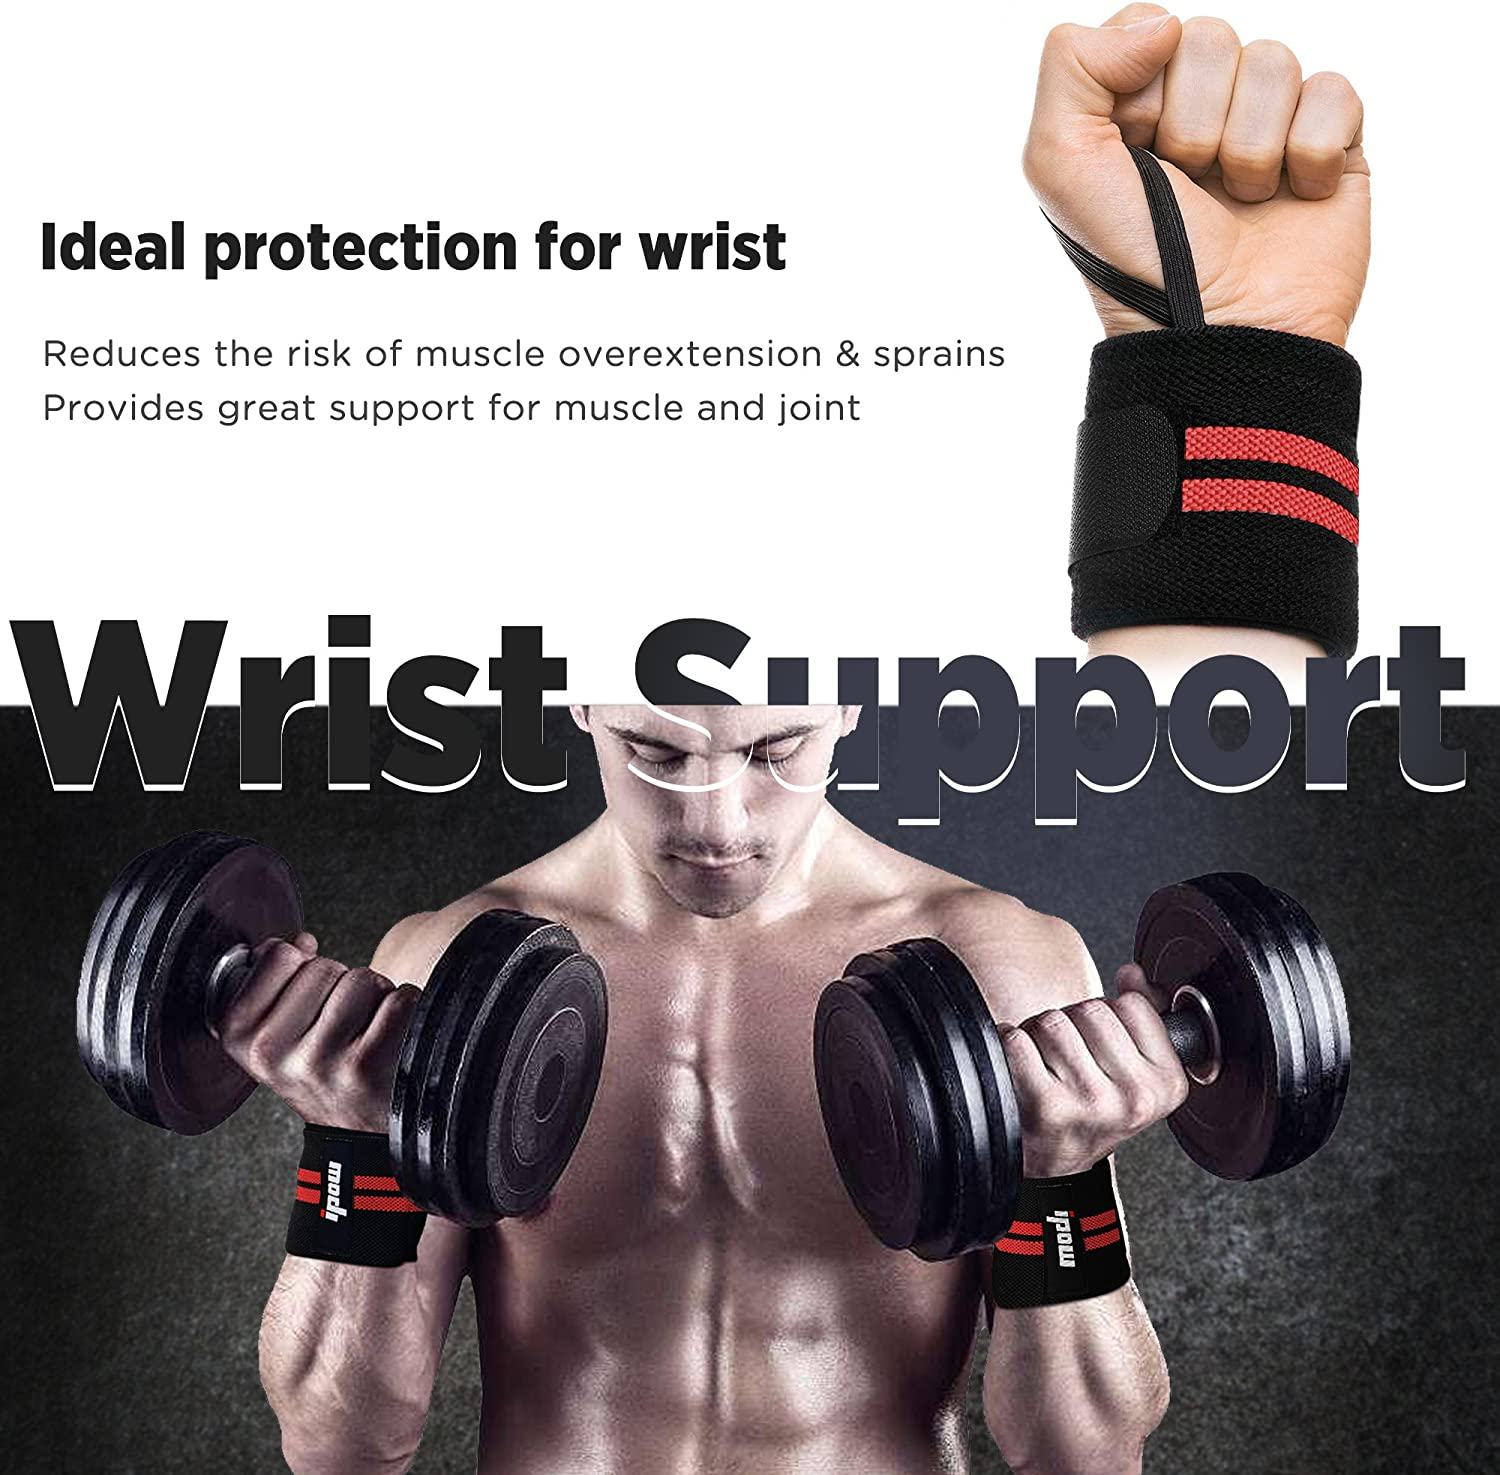 IPOW 18.5 Professional Quality Wrist Straps Support Braces Wraps Belt Protector with 2.5 Thumb Loops for Powerlifting Bodybuilding One Size fits All Men/& Women Weight Lifting Strength Training